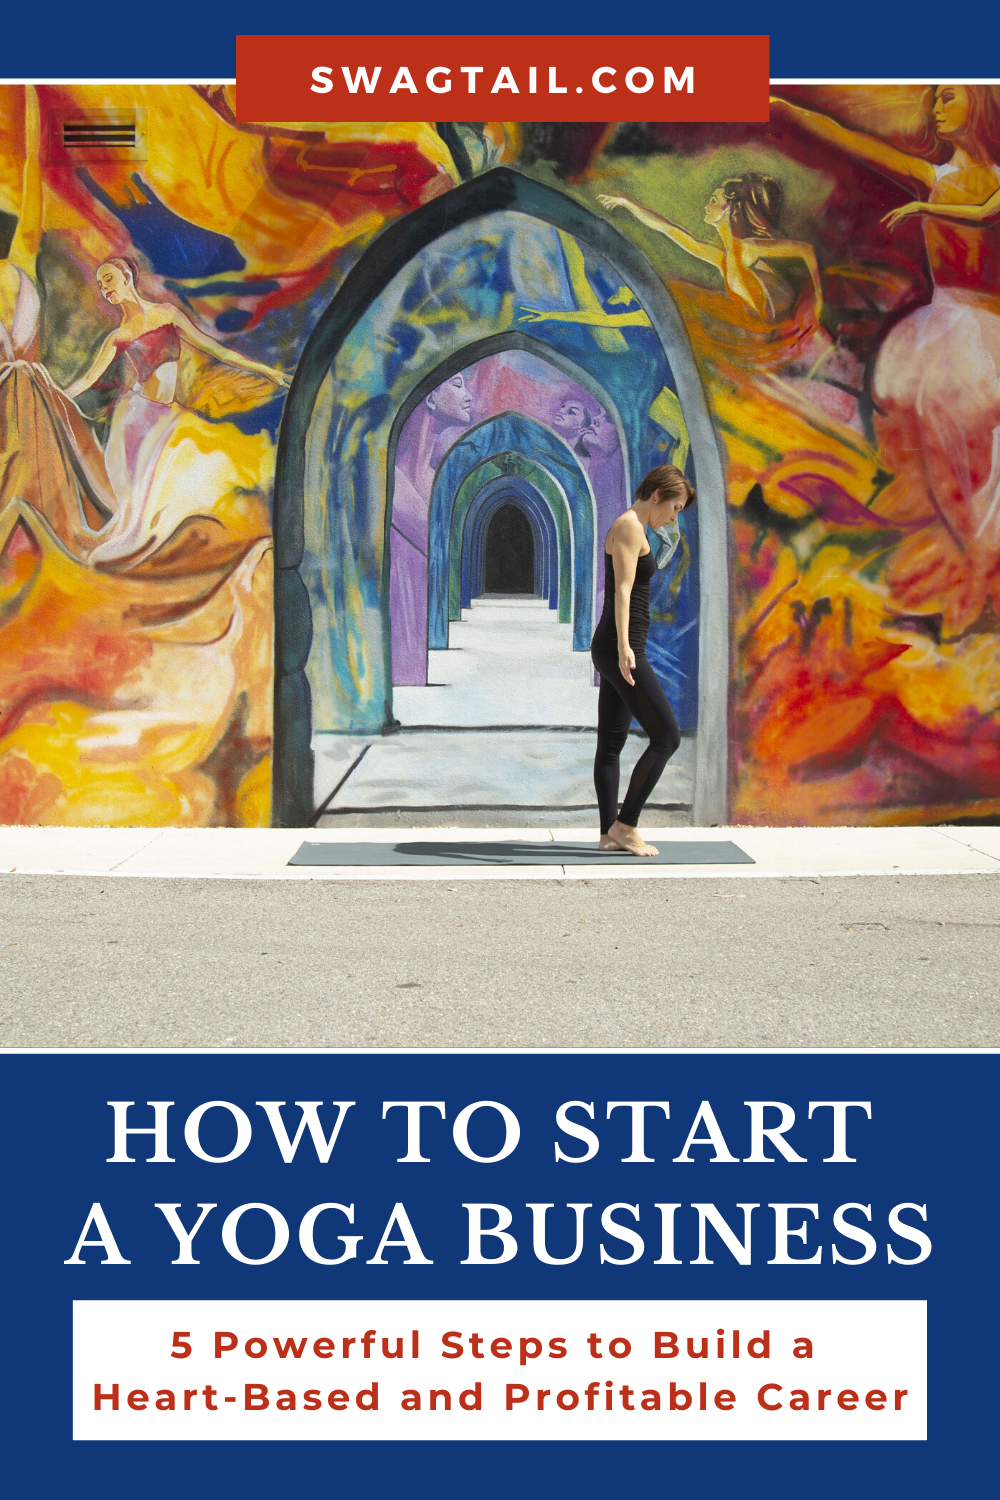 There are simple steps to start a yoga business that's profitable and heart-based, whether you teach part-time or full-time. This article shows you how.